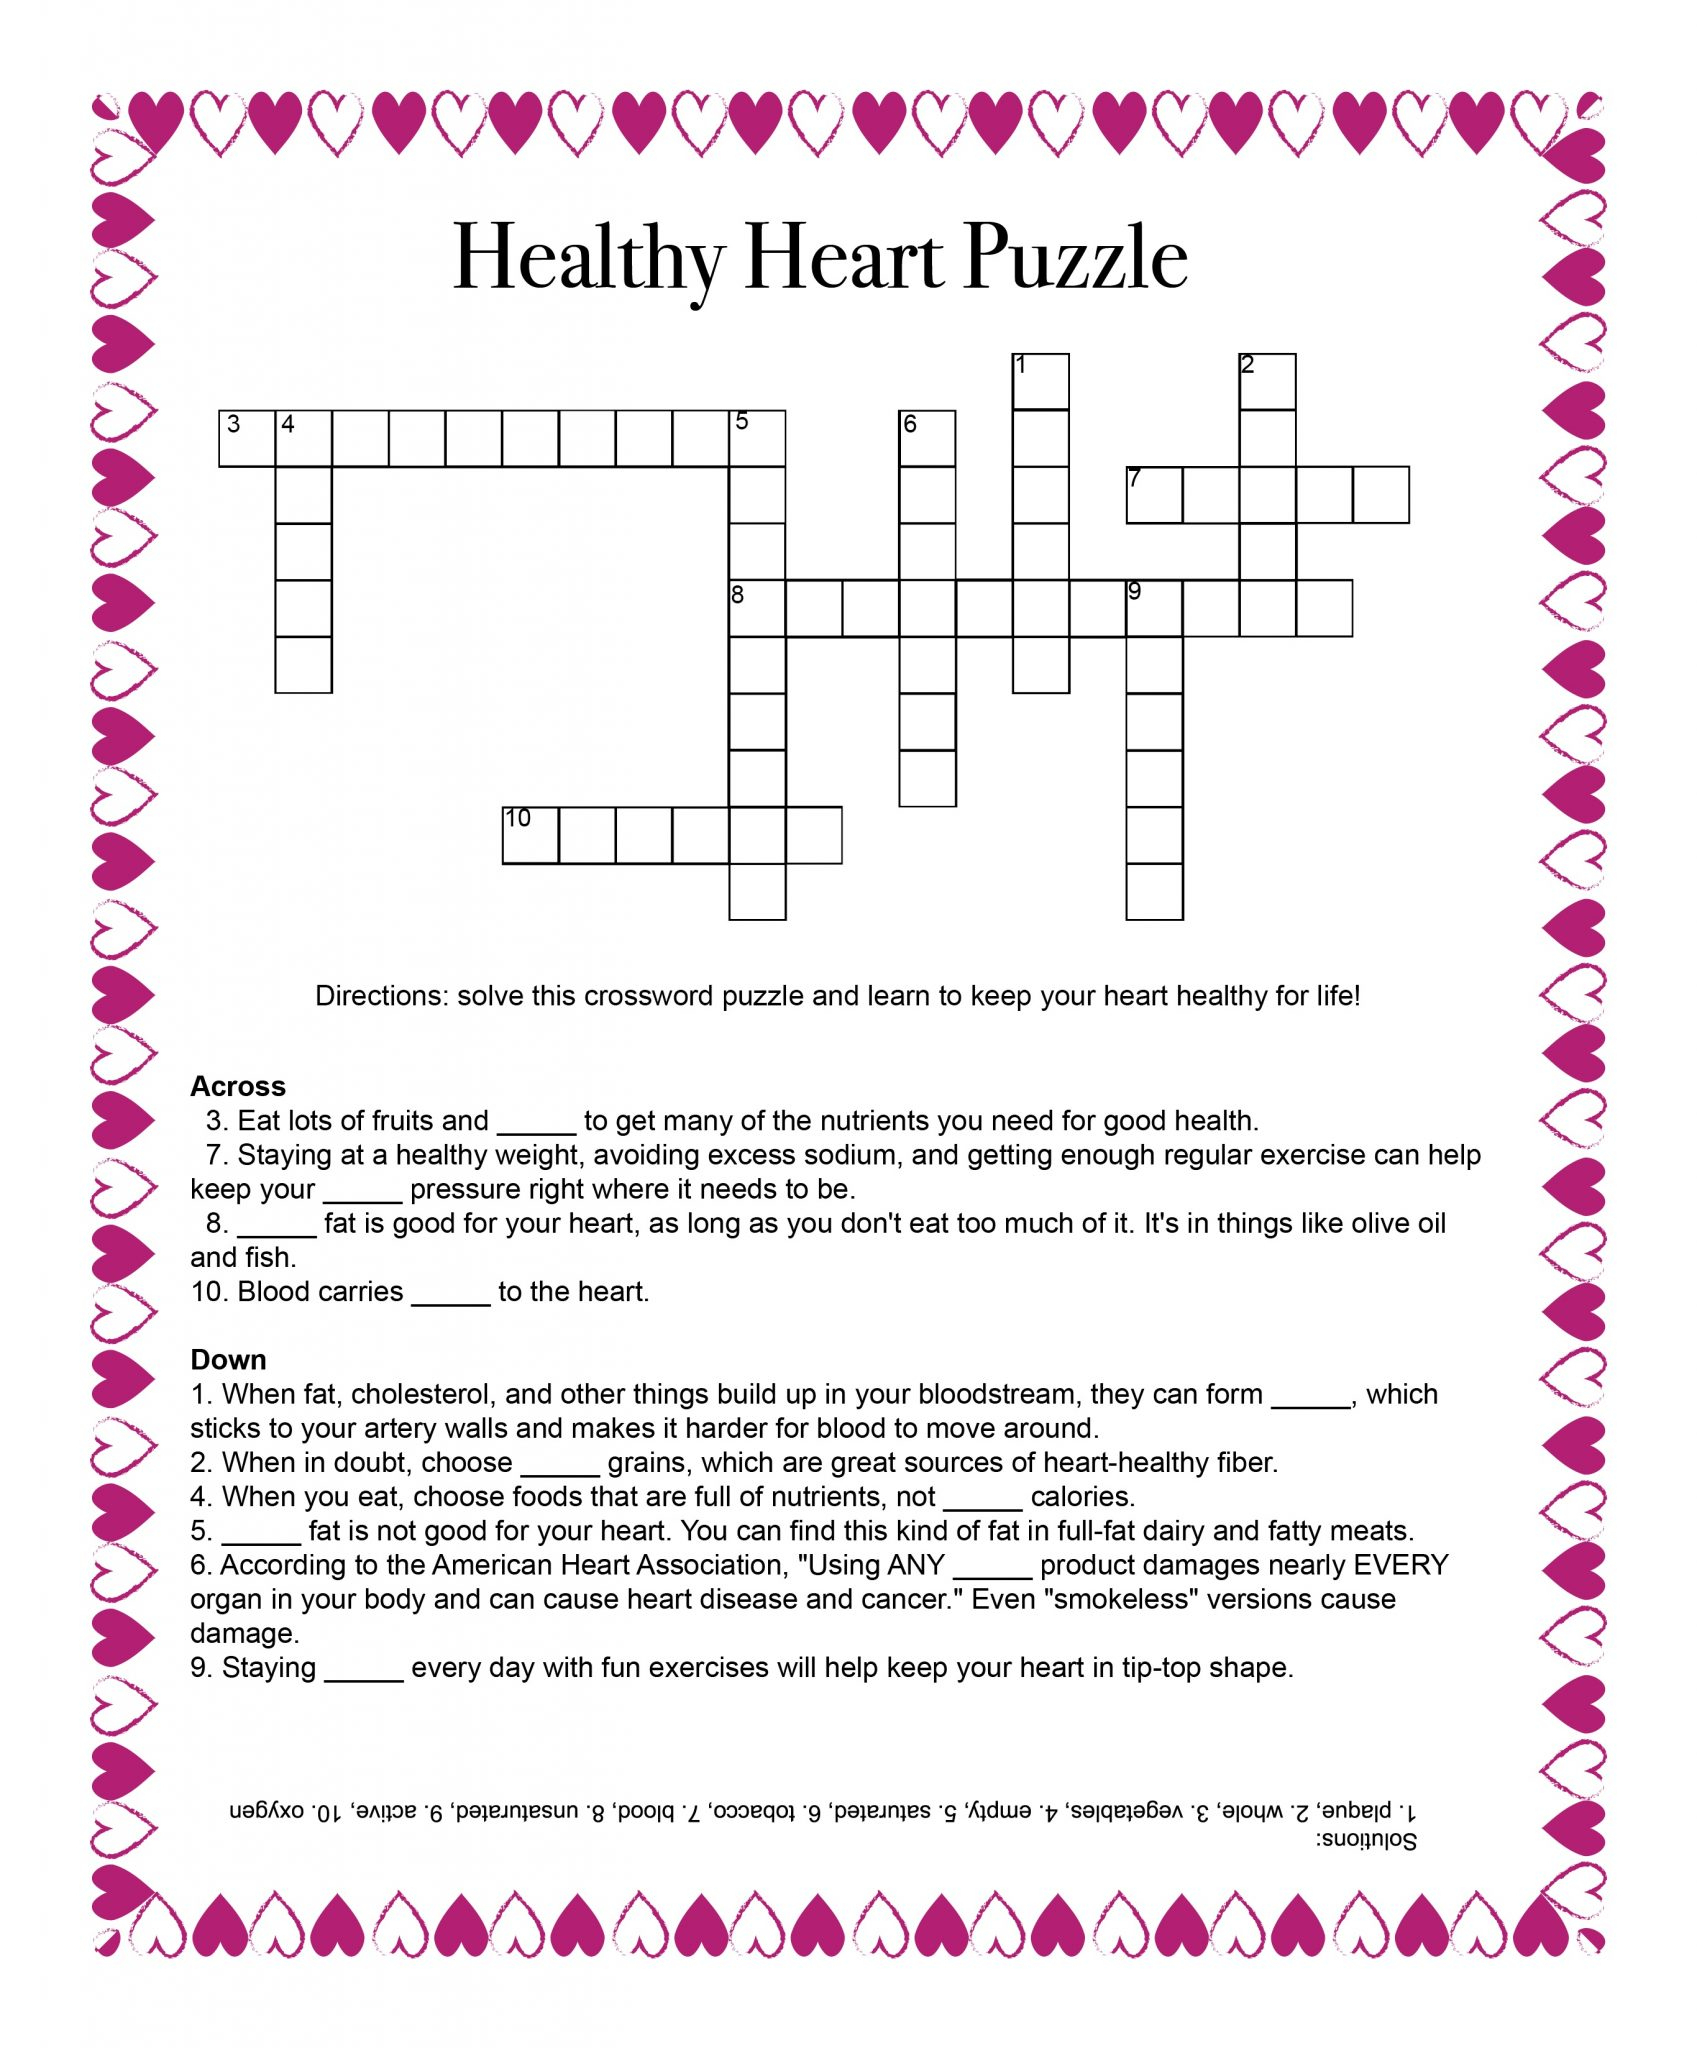 Healthy Heart Puzzle – Food And Health Communications - Printable Nutrition Crossword Puzzle